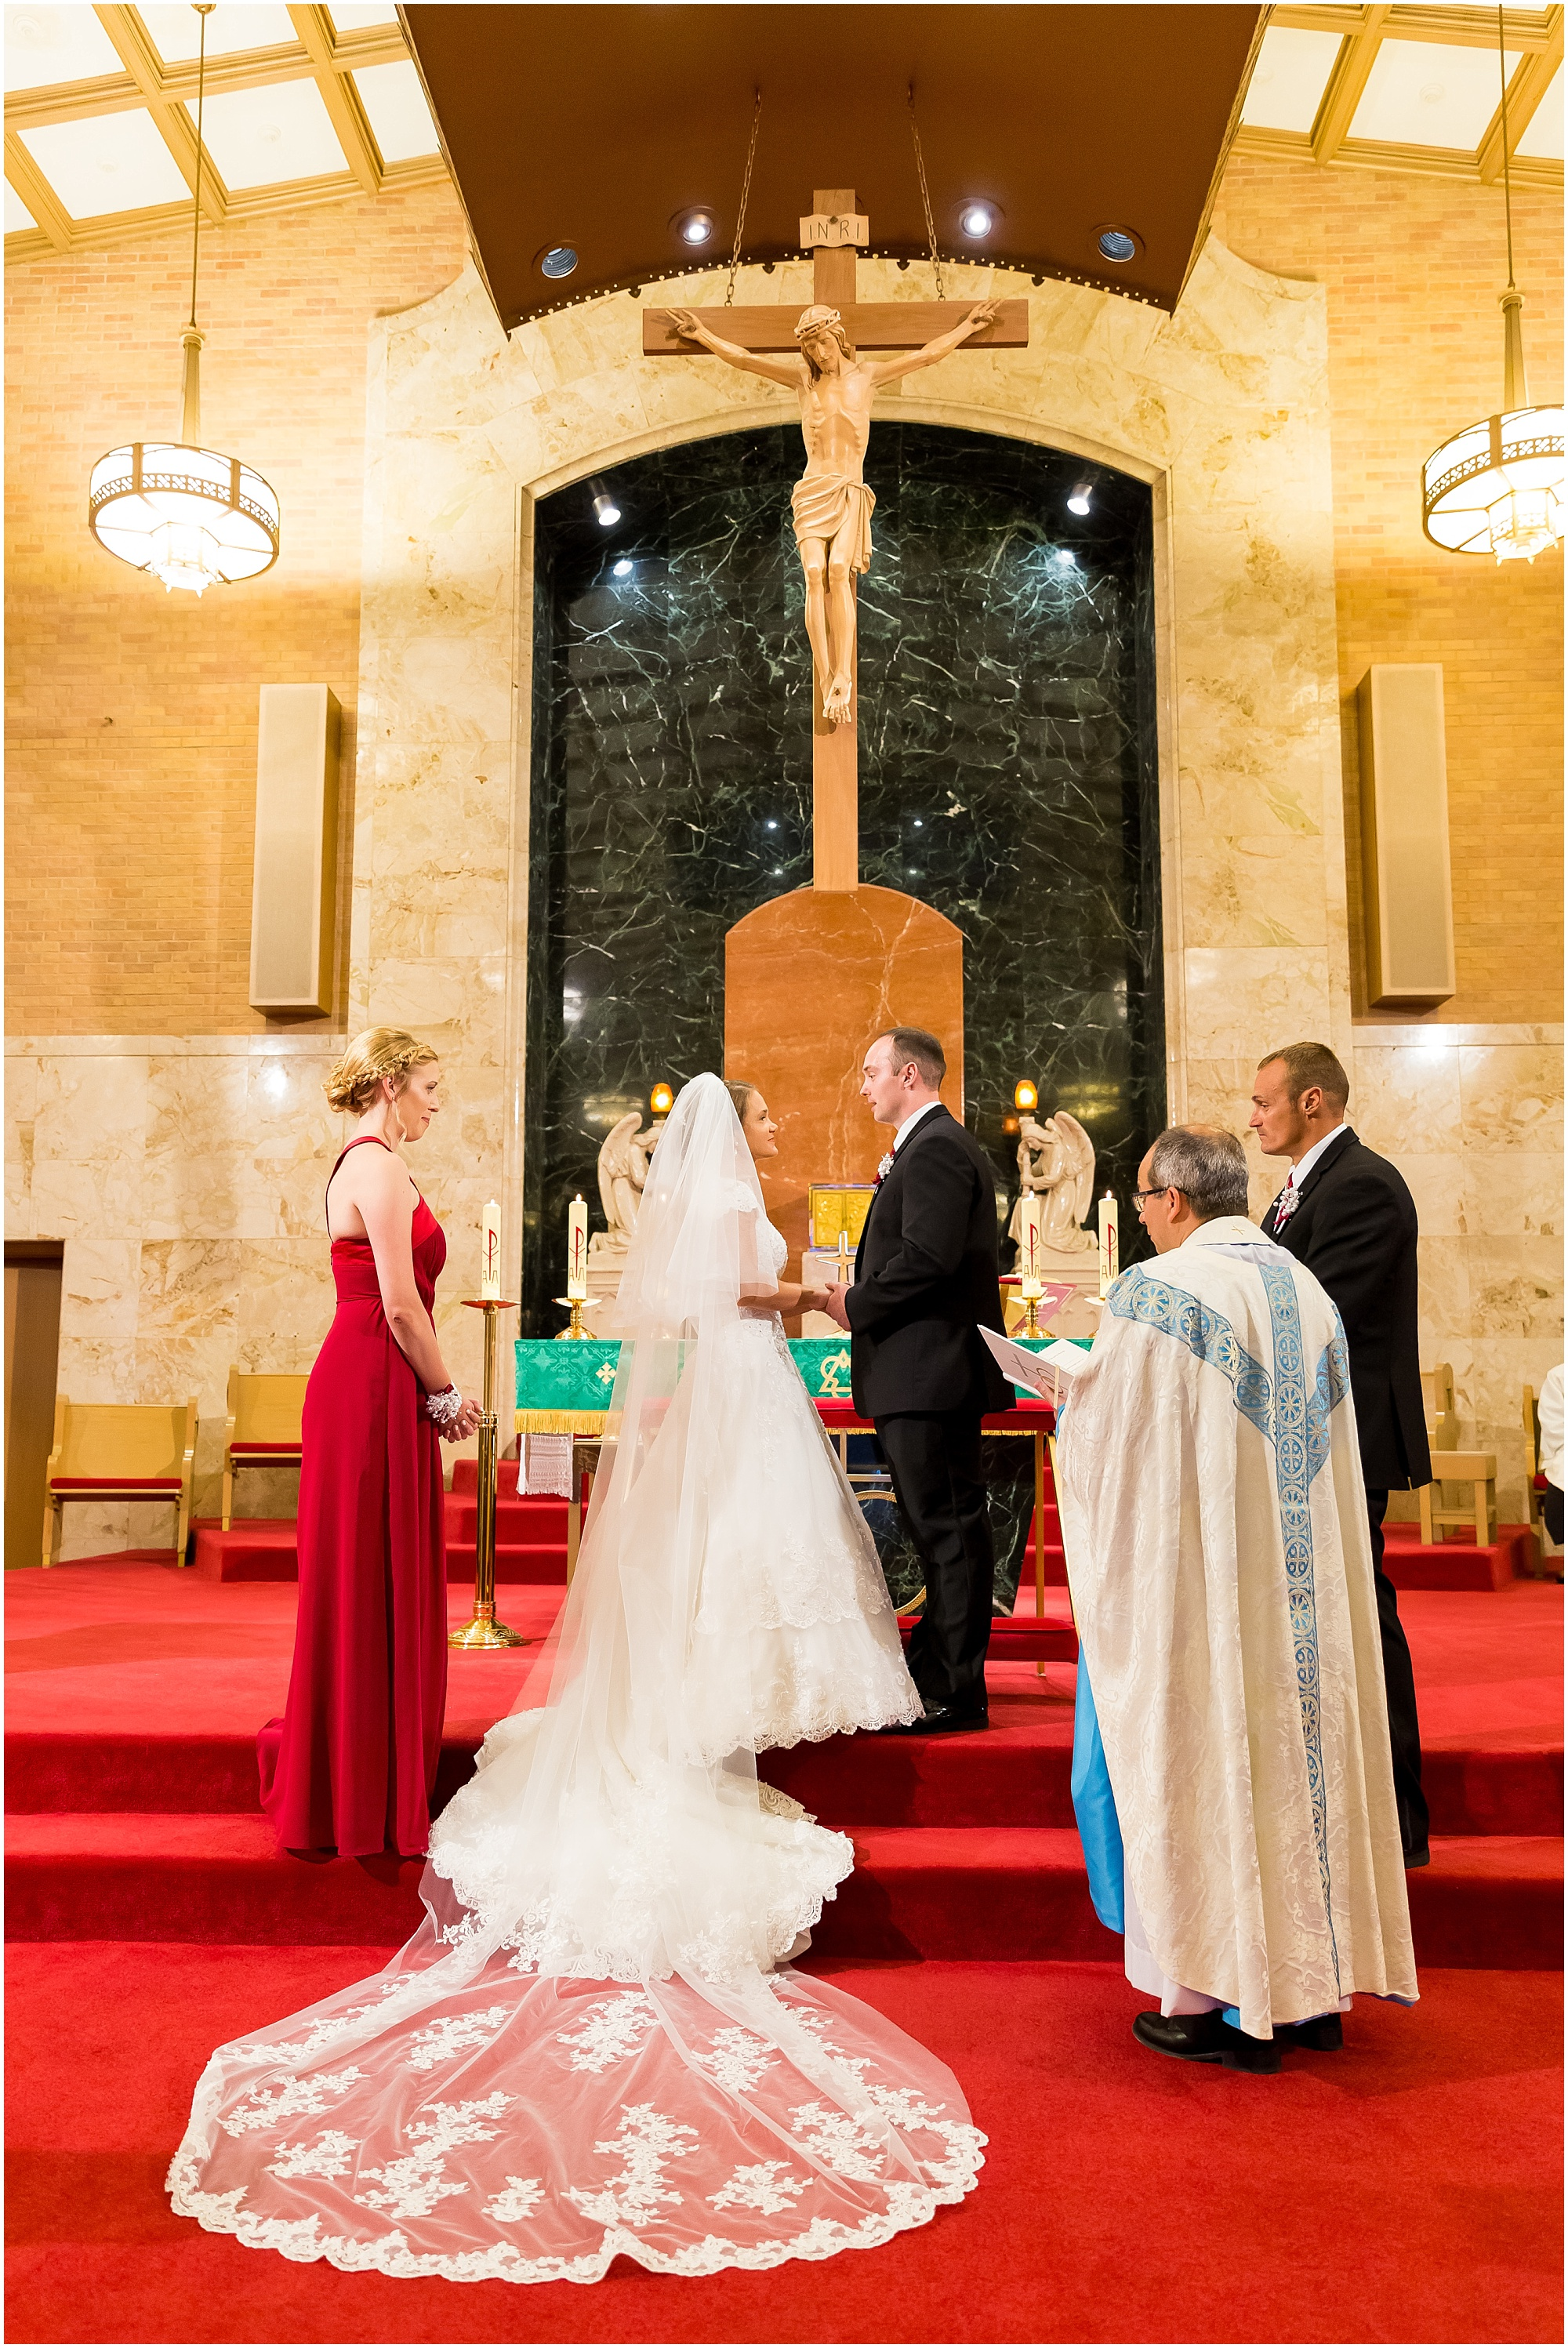 A couple exchanges vows inside St. Louis Catholic Church in Waco, Texas - Jason & Melaina Photography - www.jasonandmelaina.com